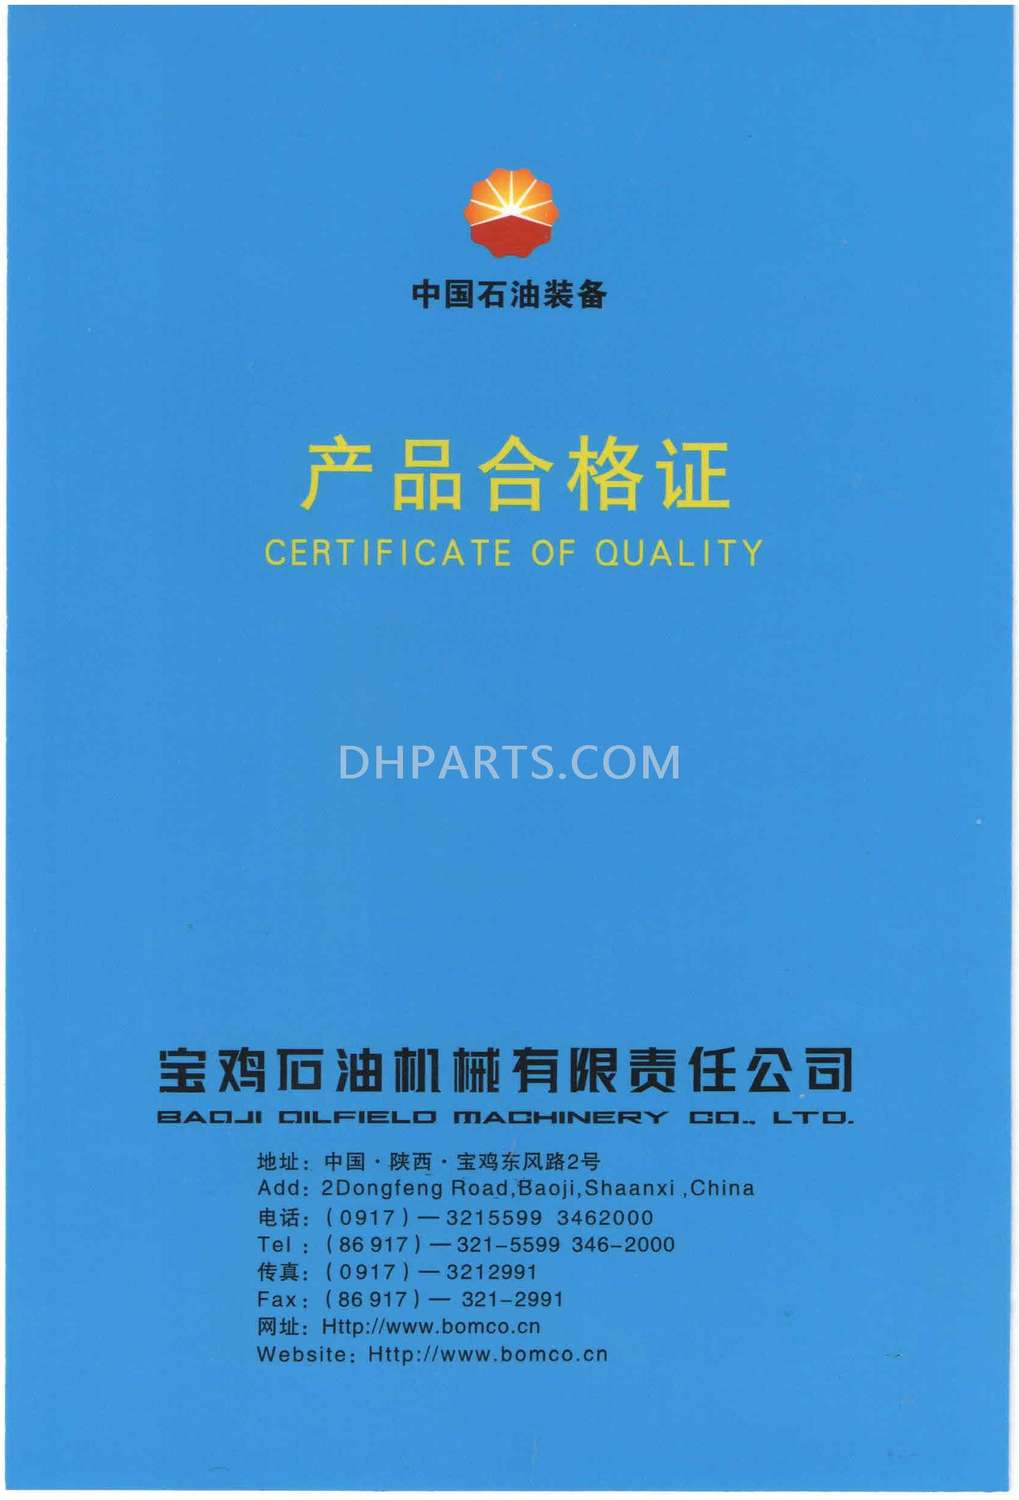 bomco certificate of quality